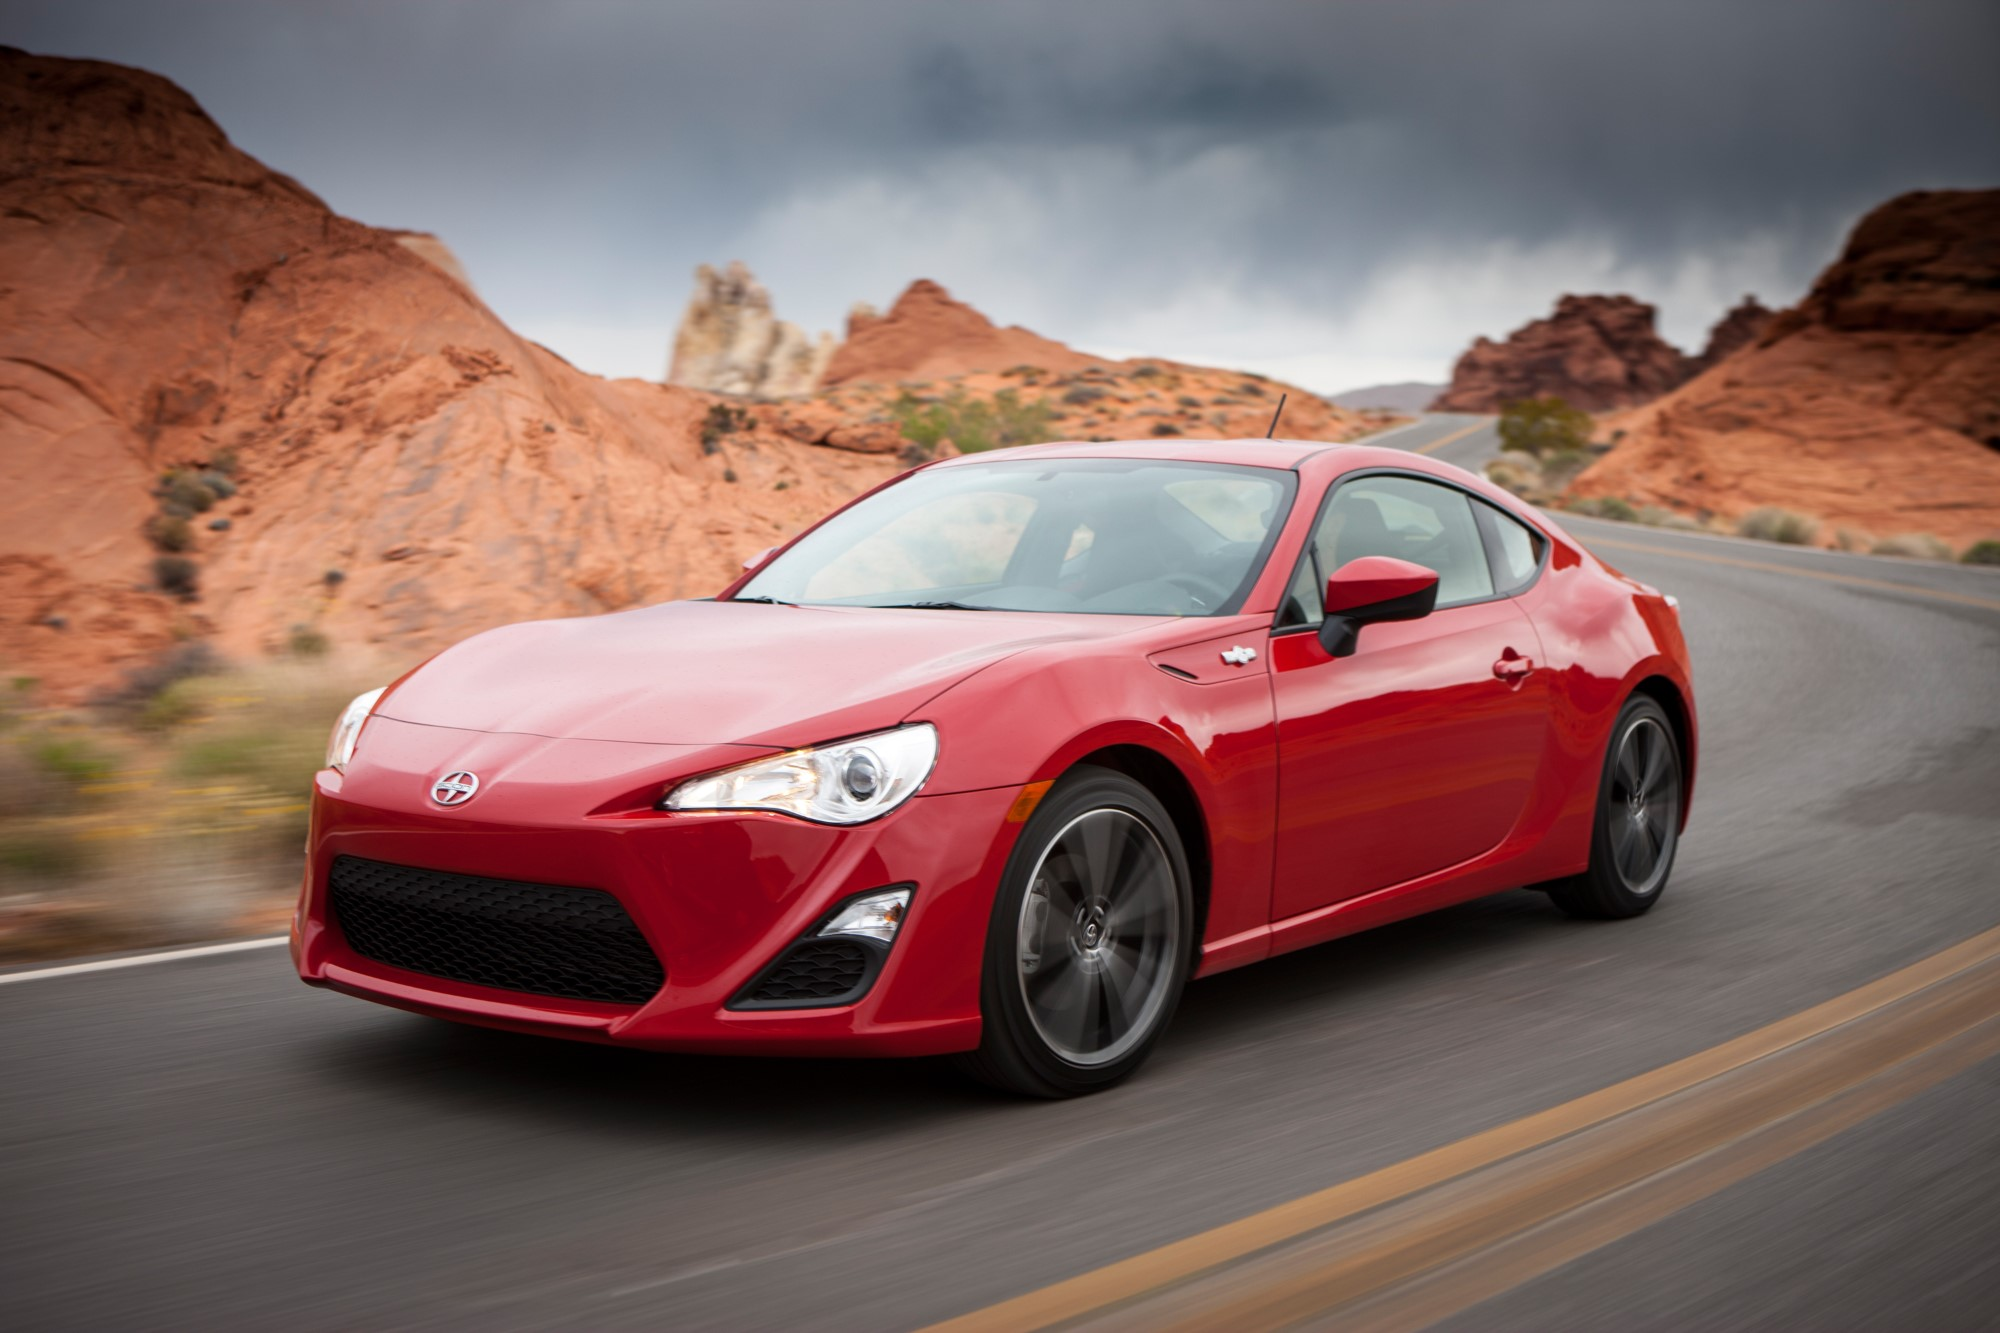 Bmw Of Fresno >> 2014 Scion FR-S Review, Ratings, Specs, Prices, and Photos - The Car Connection